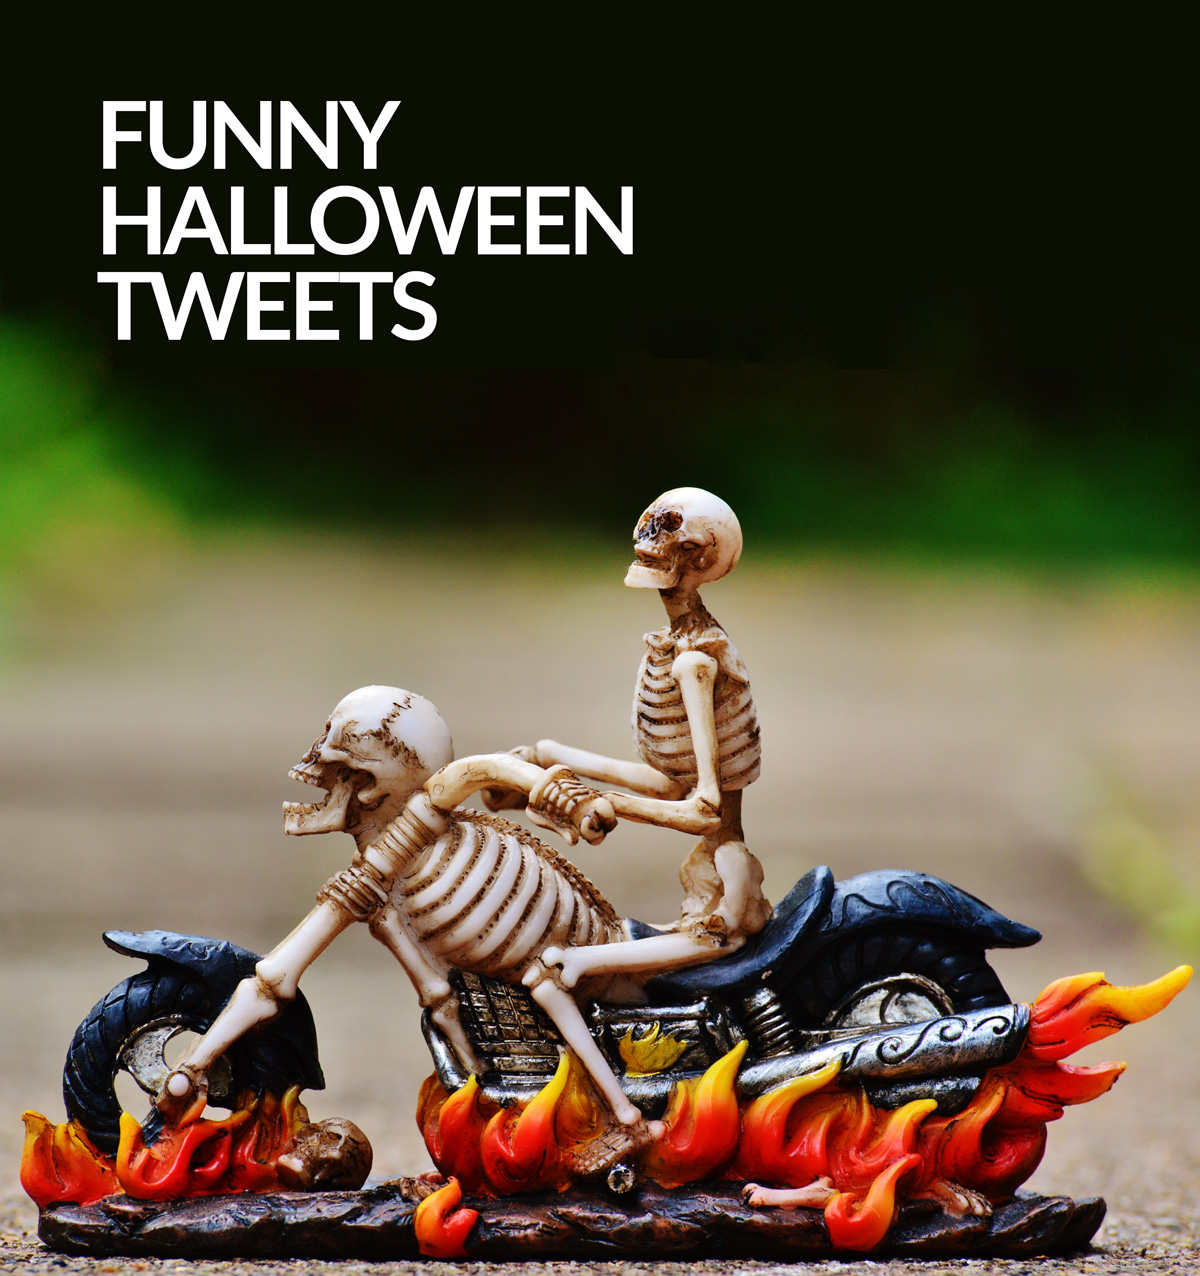 Funny Tweets From Halloween